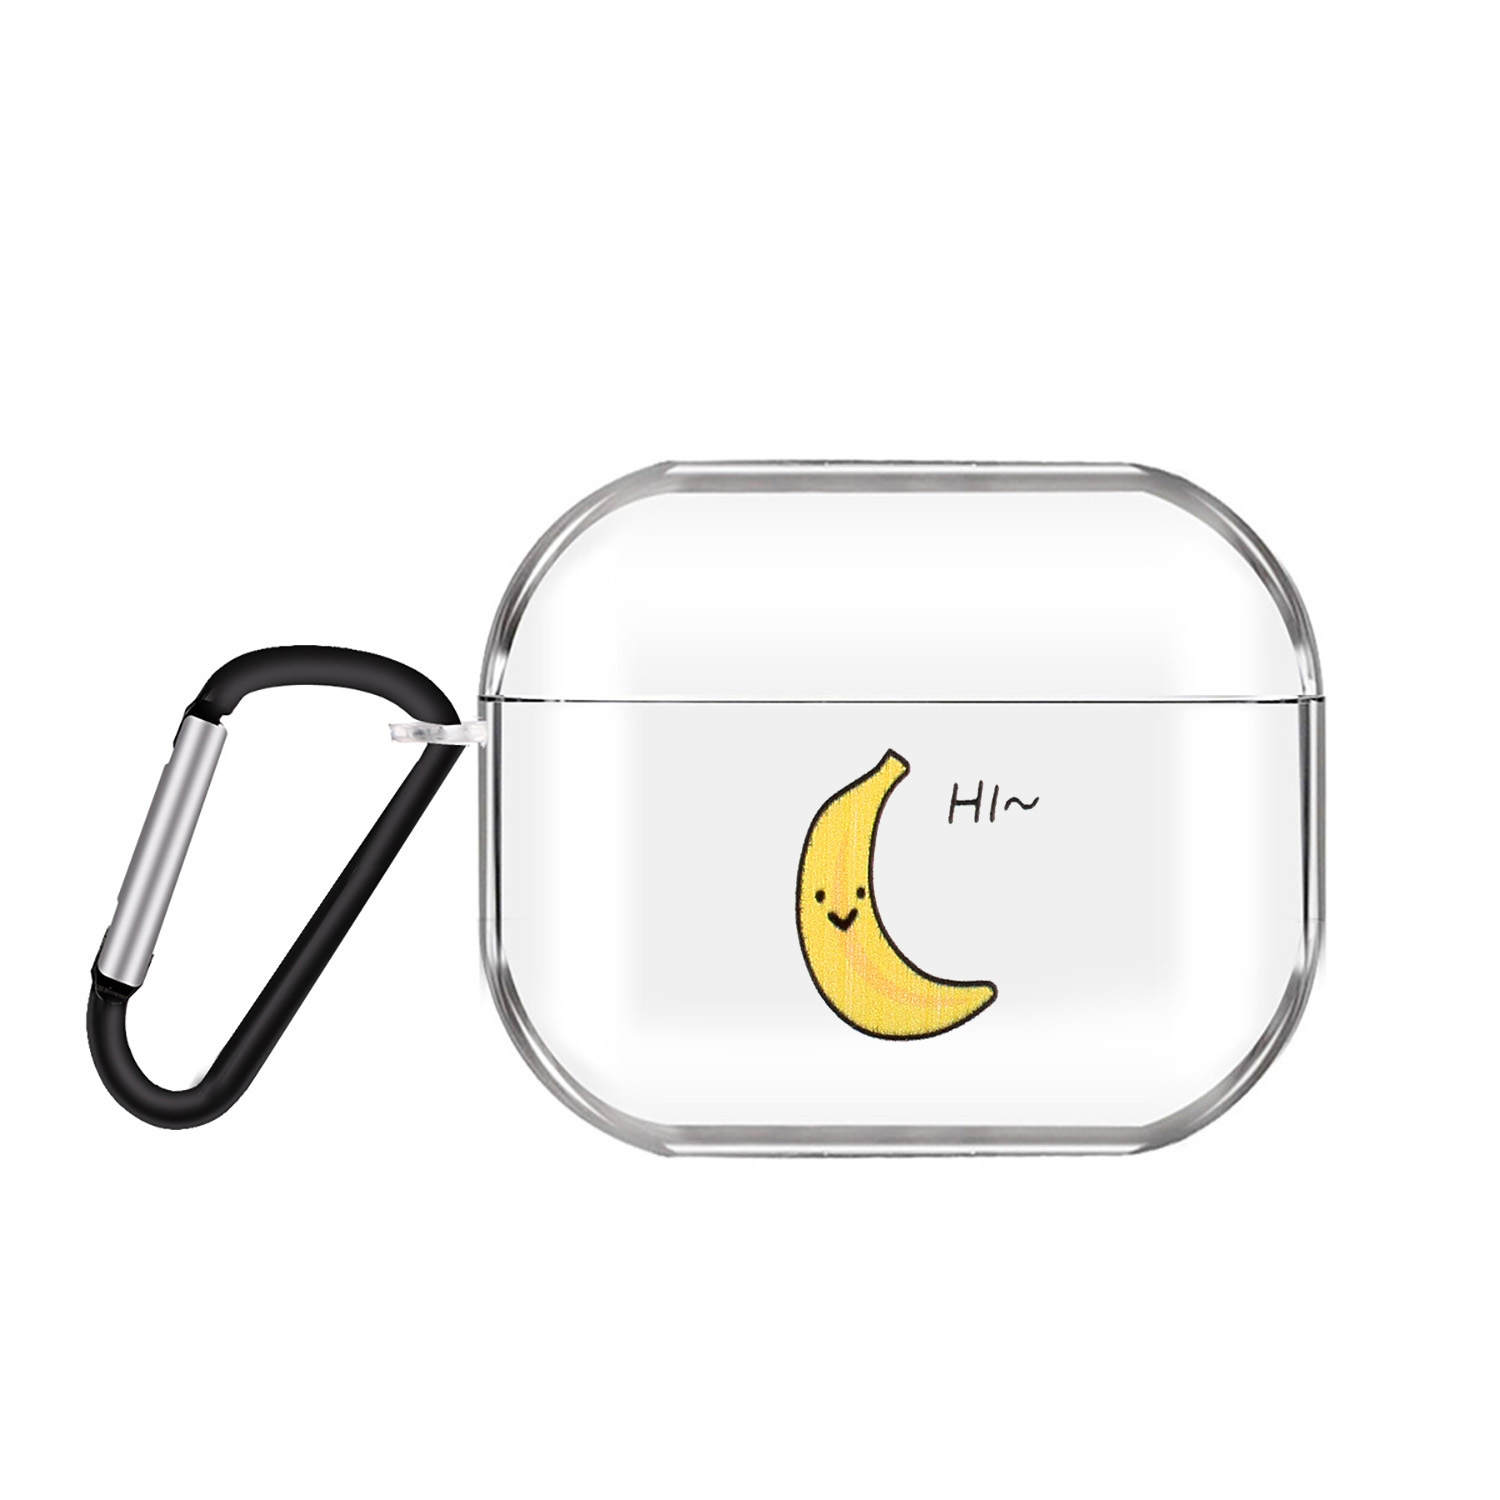 For AirPods Pro Headphones Case Full Protection Clear Cute Earphone Shell with Metal Hook 2 bananas